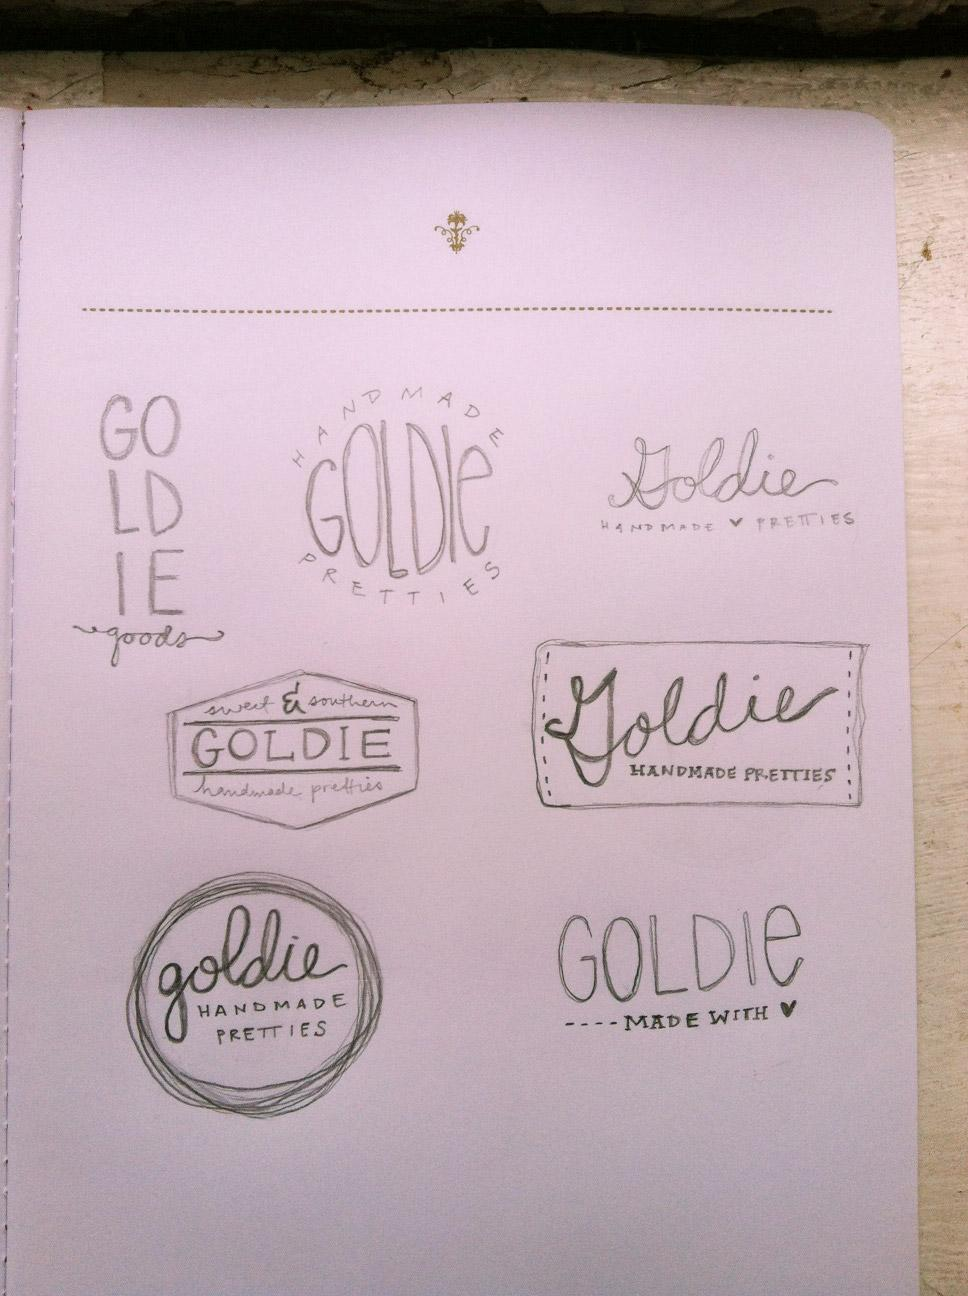 Goldie: Handmade With Love - image 1 - student project